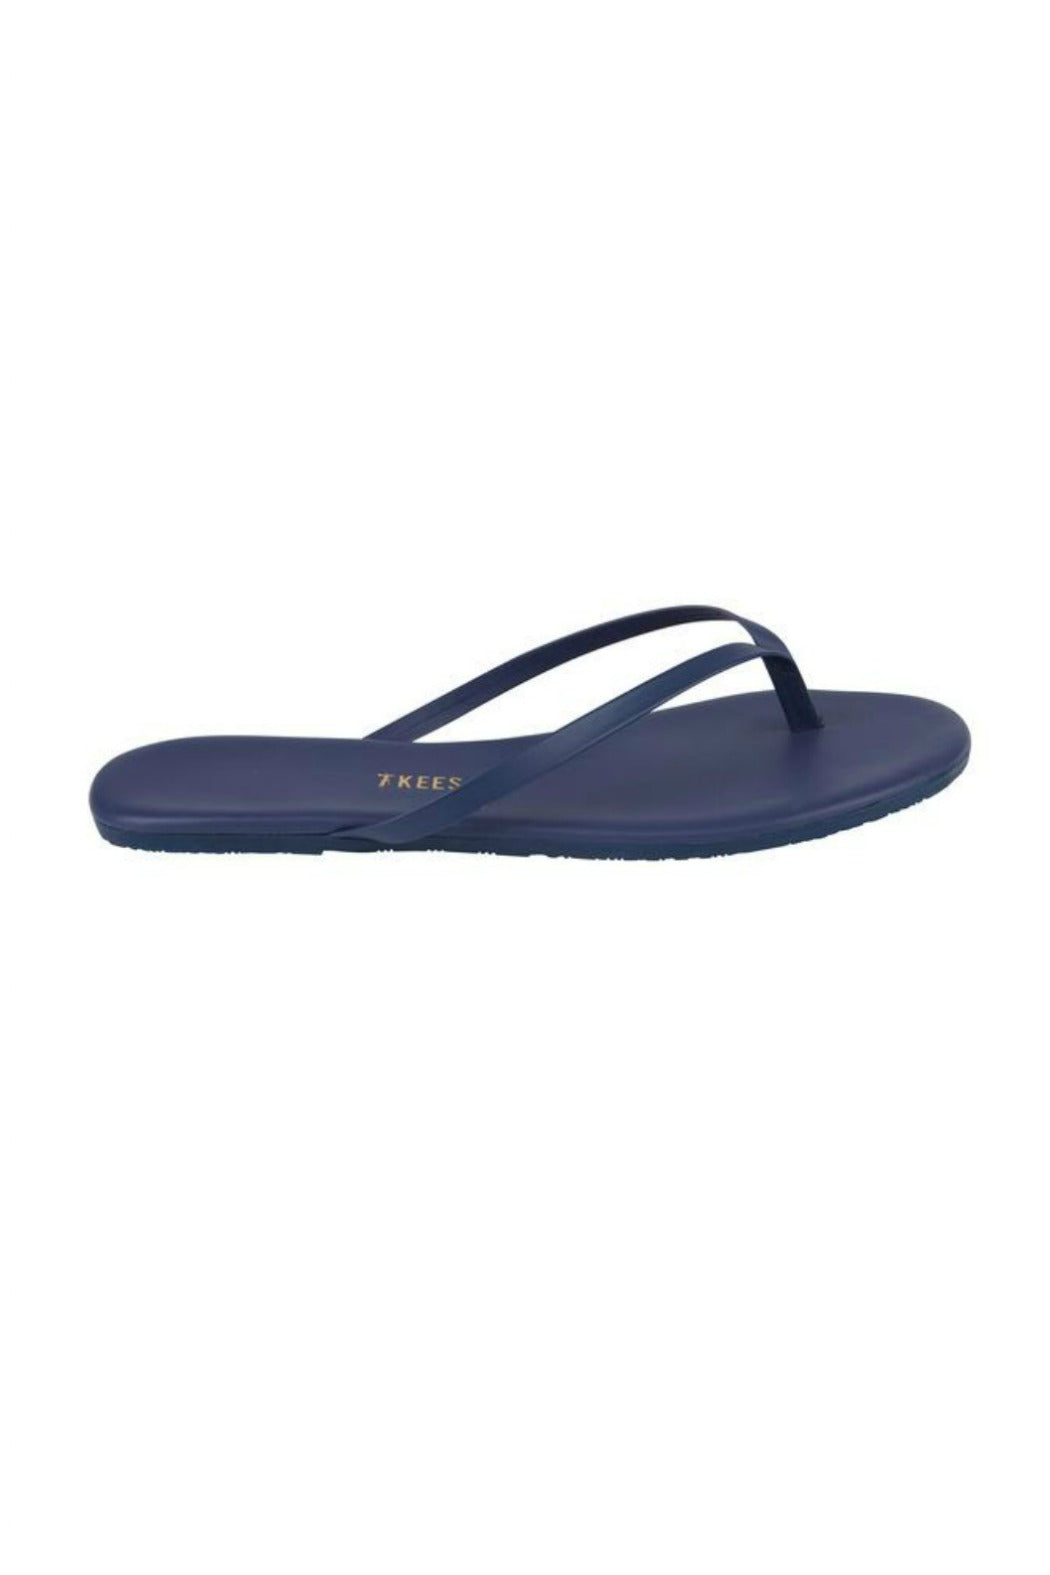 TKEES Solids Sandals Blue #17